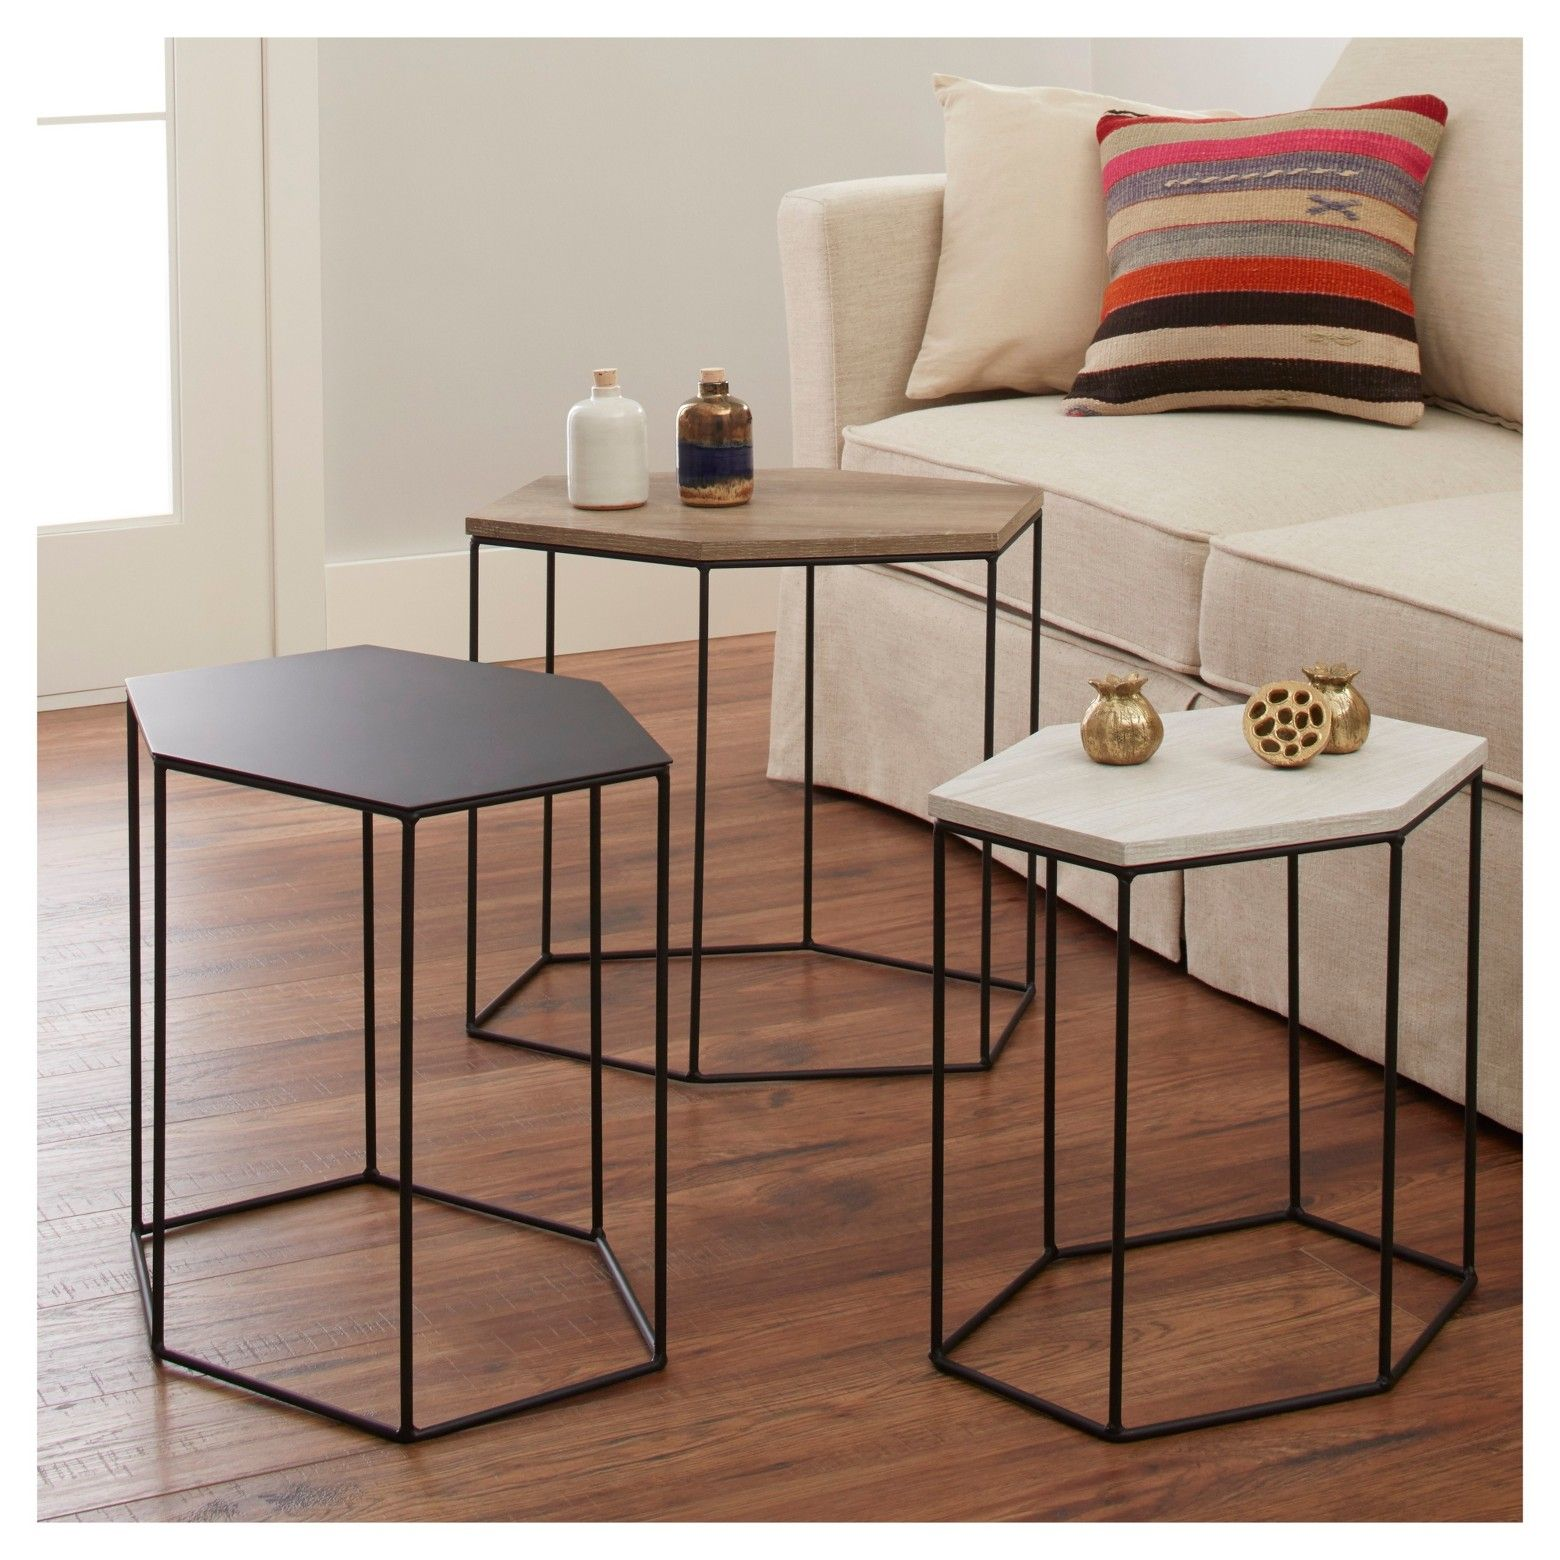 Meredith 3pk Hexagonal Accent Tables - Project 62™  sc 1 st  Pinterest & Revamp your home decor with the Whitney Hexagonal Accent Tables ...